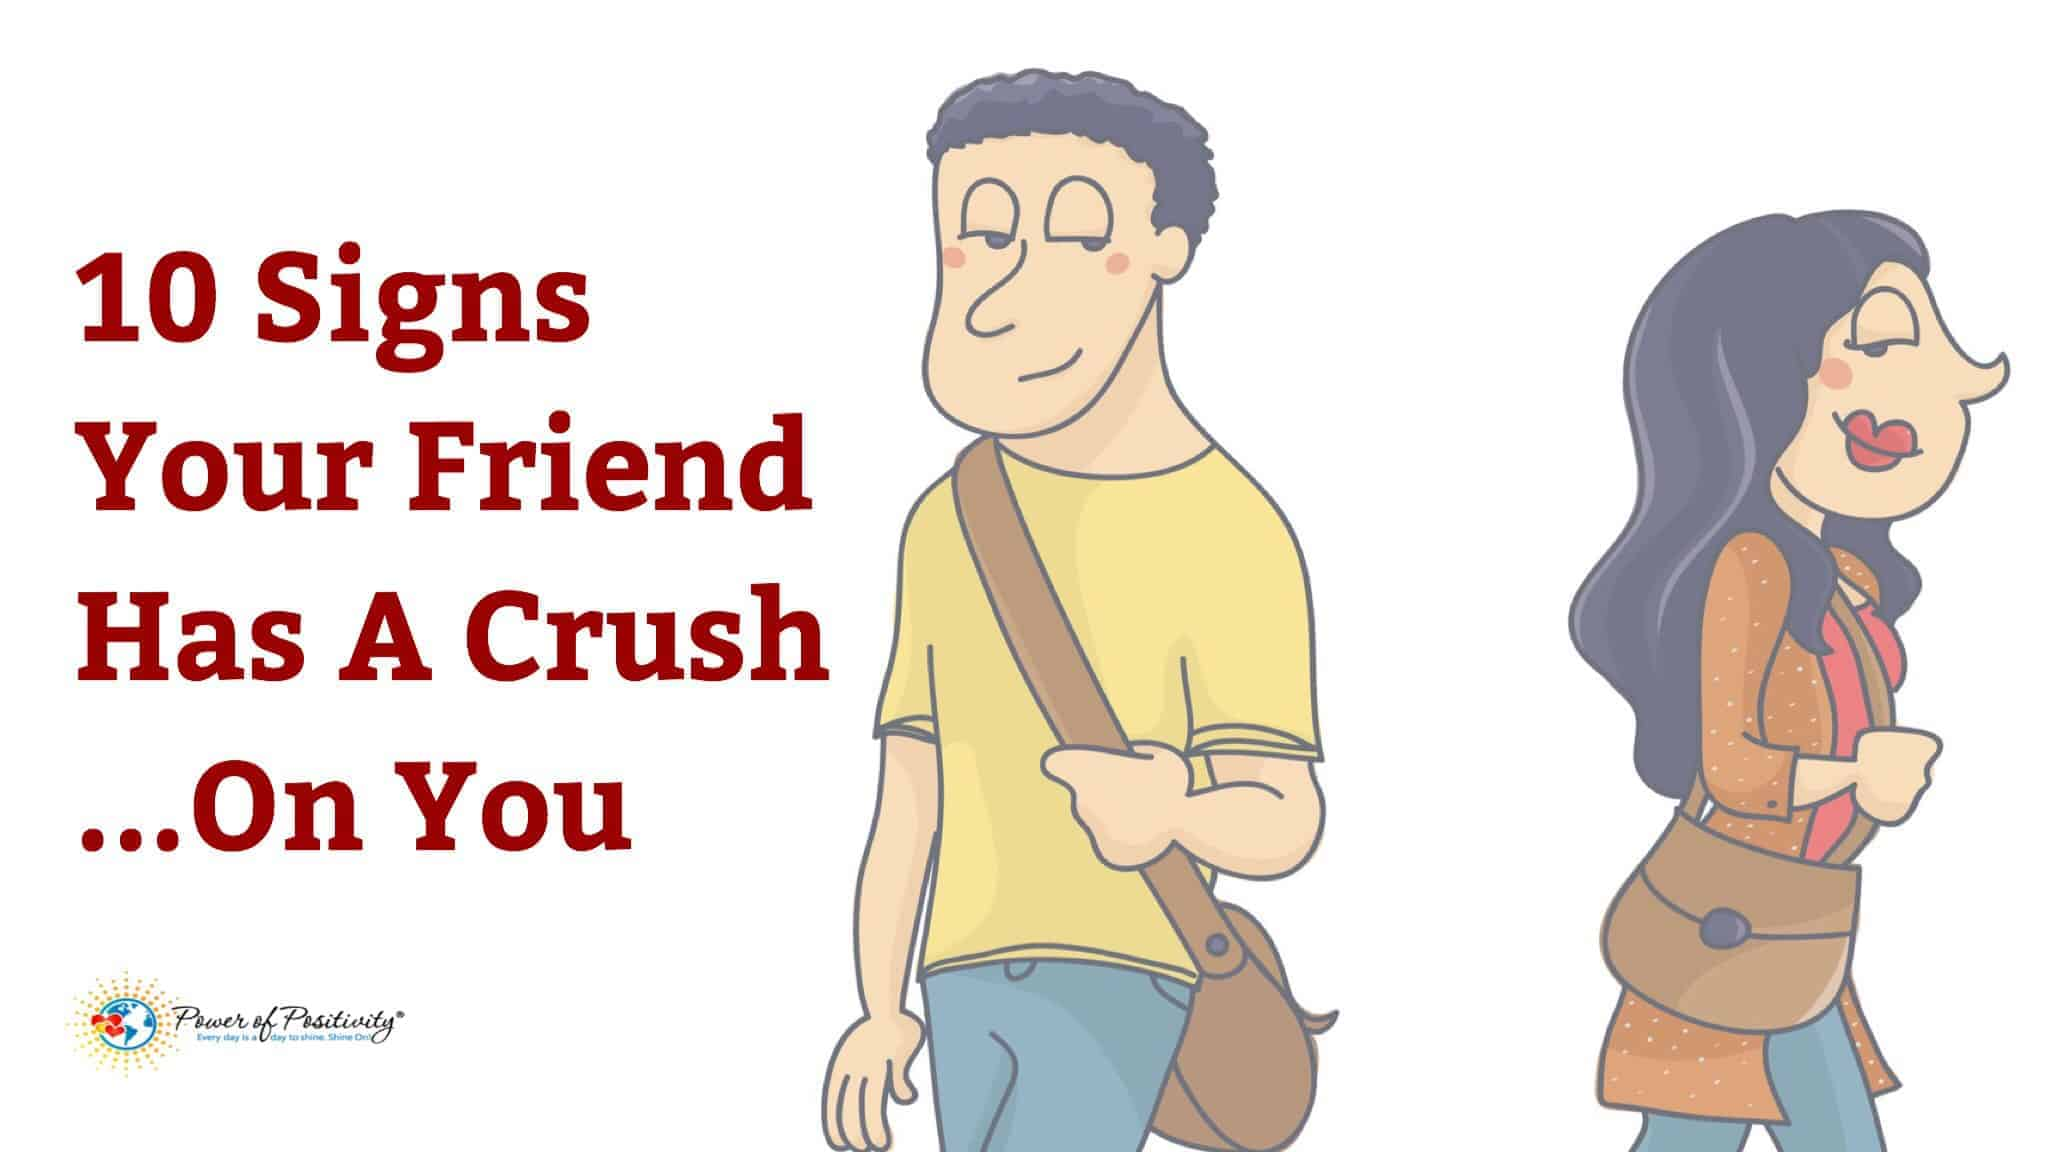 10 signs your friend